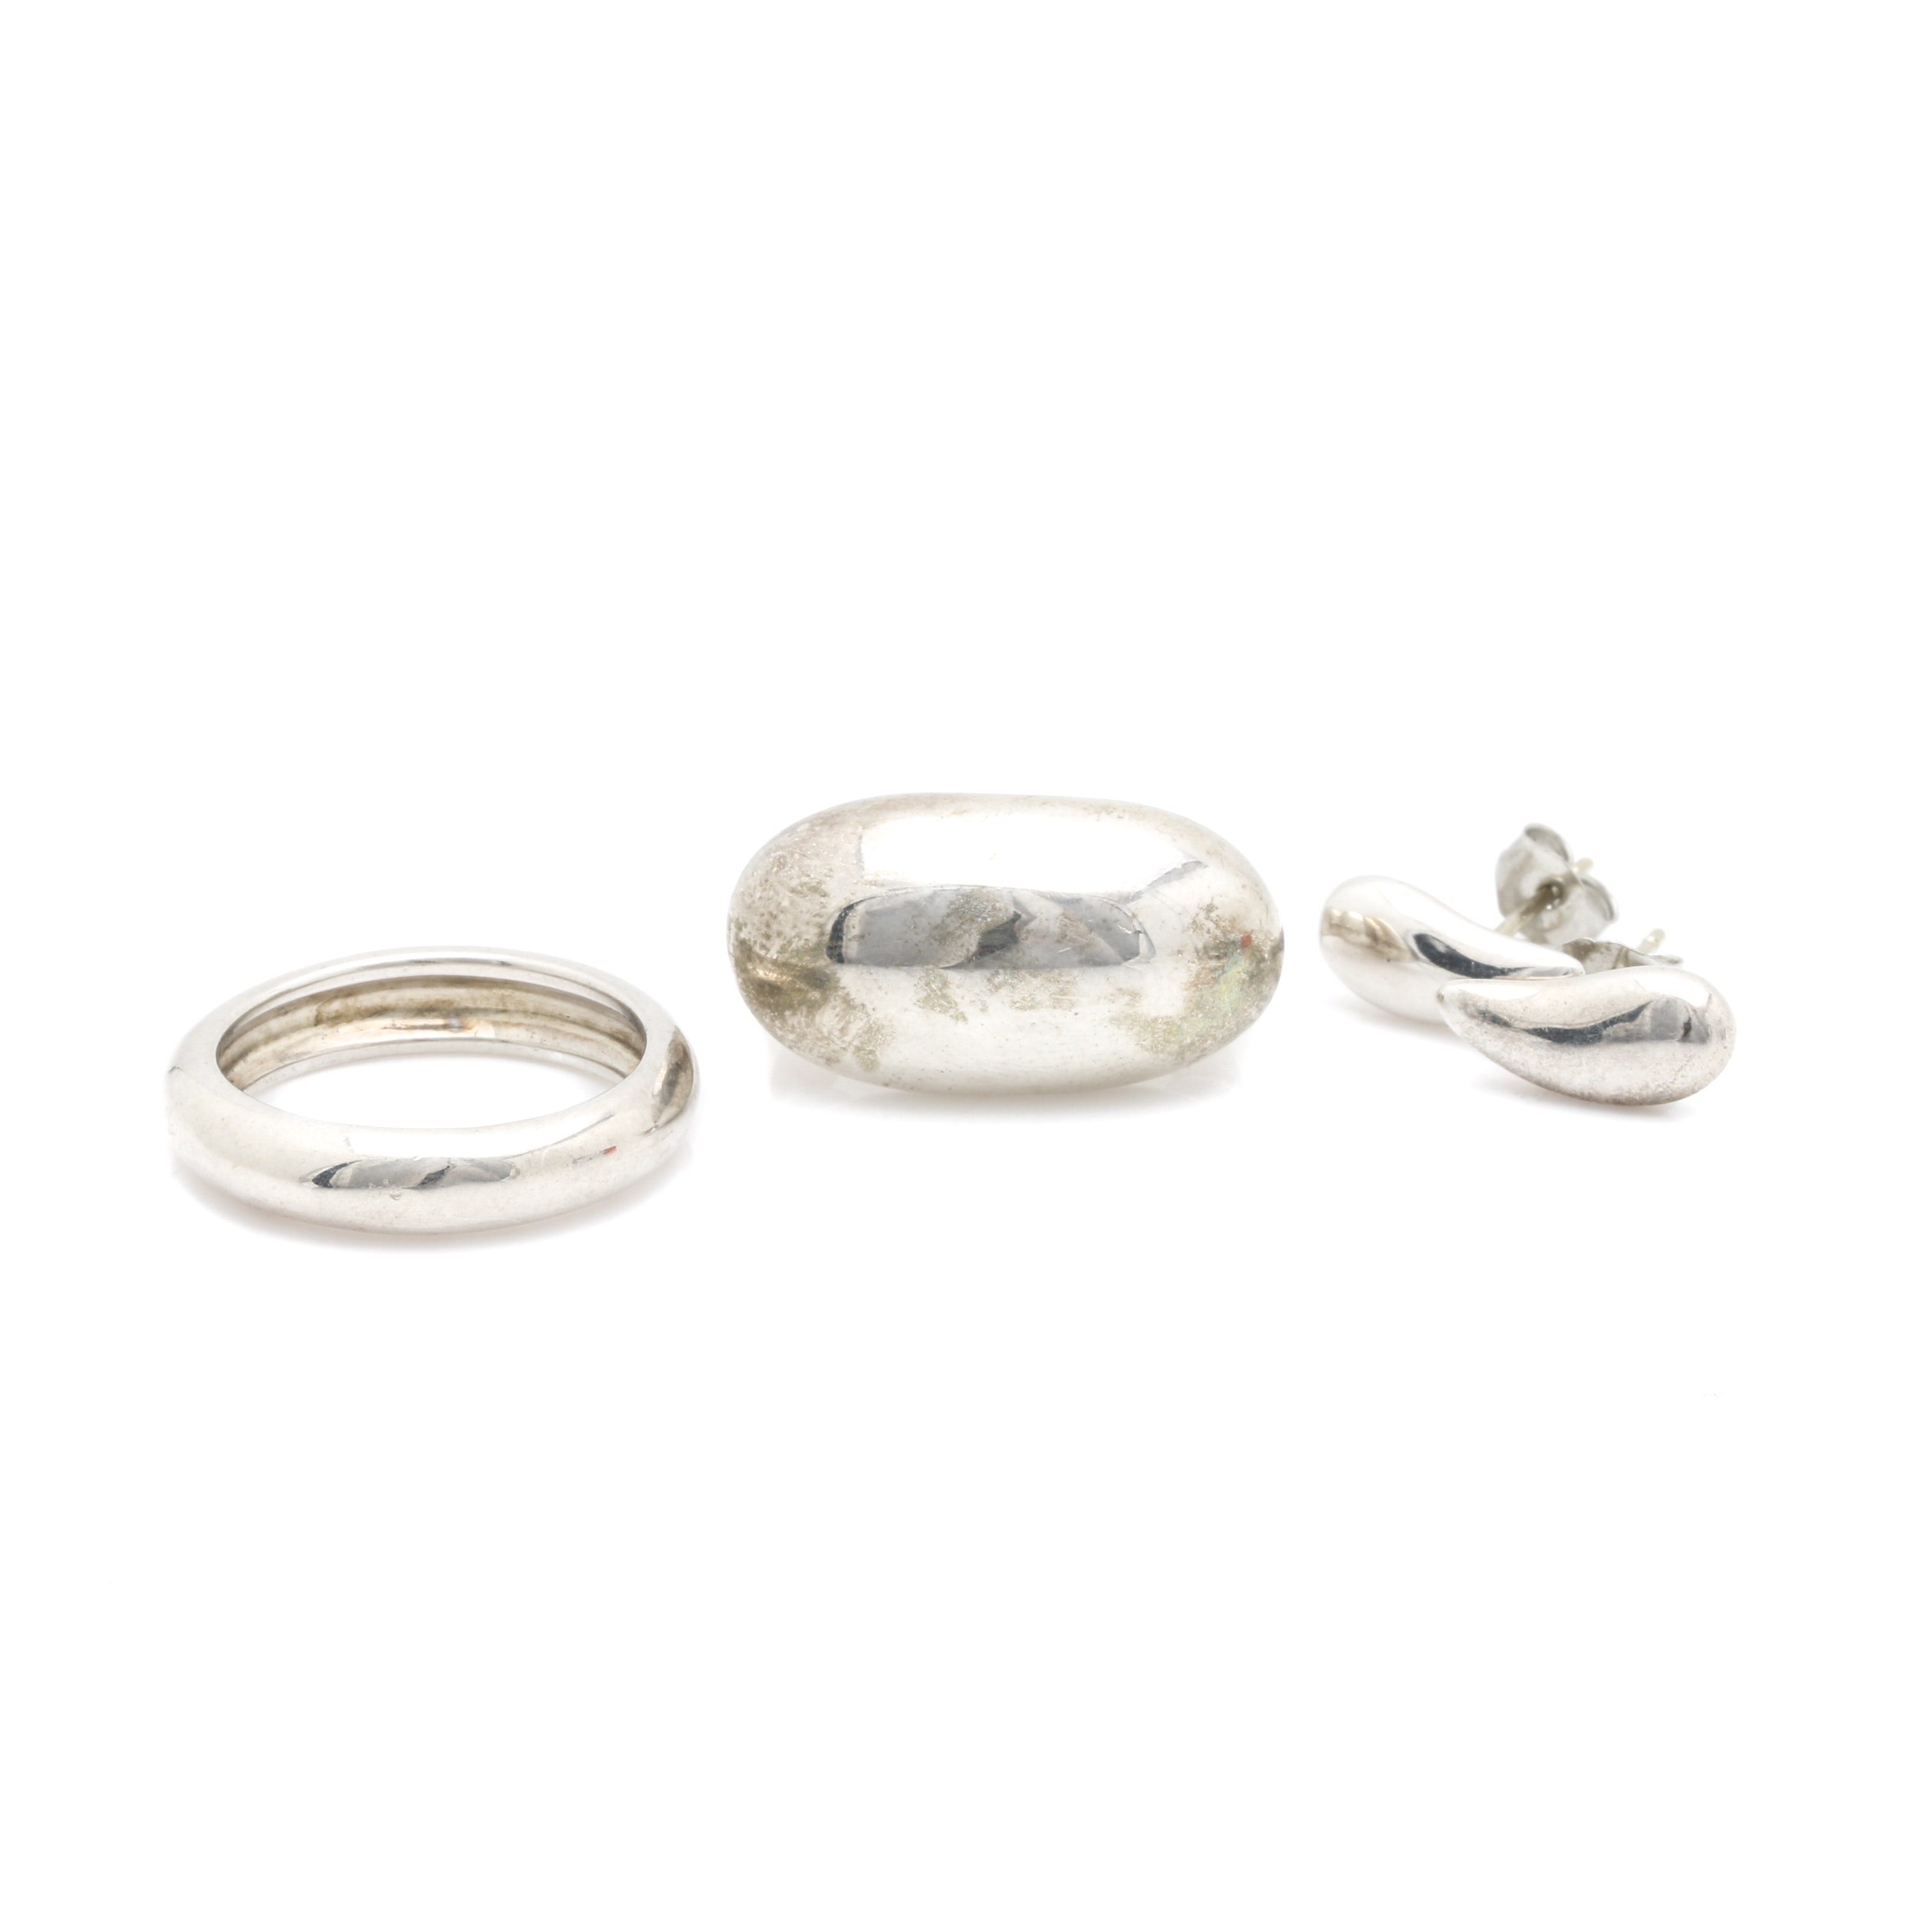 Bill Schiffer Sterling Silver Earring and Ring Selection